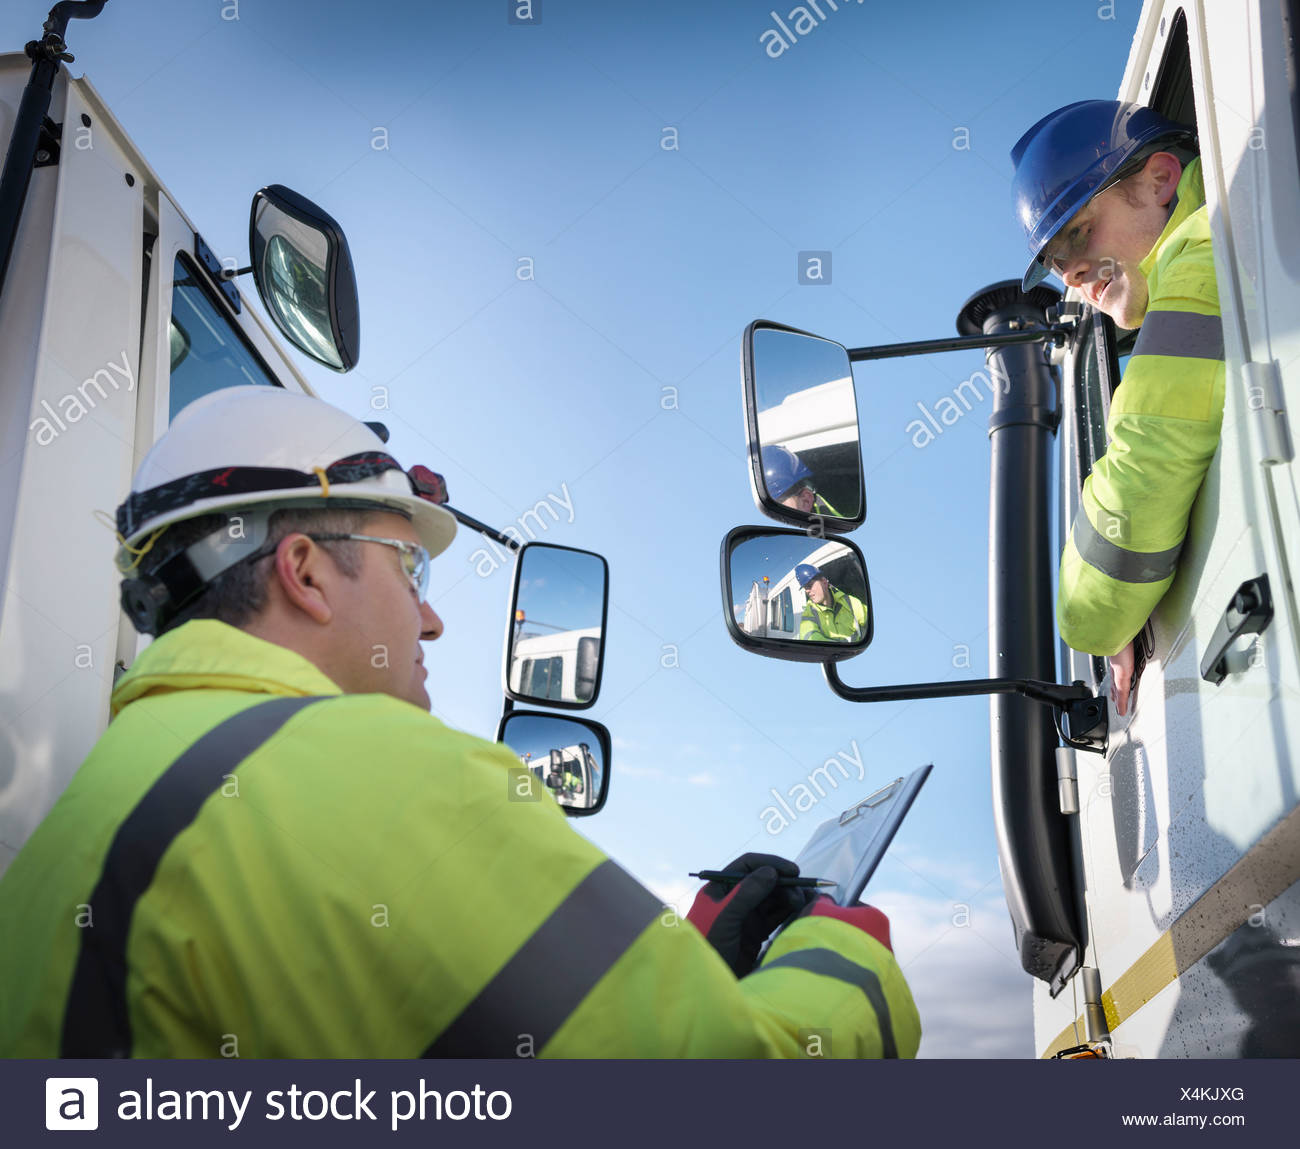 Emergency Response workers with specialist equipment and rescue trucks - Stock Image